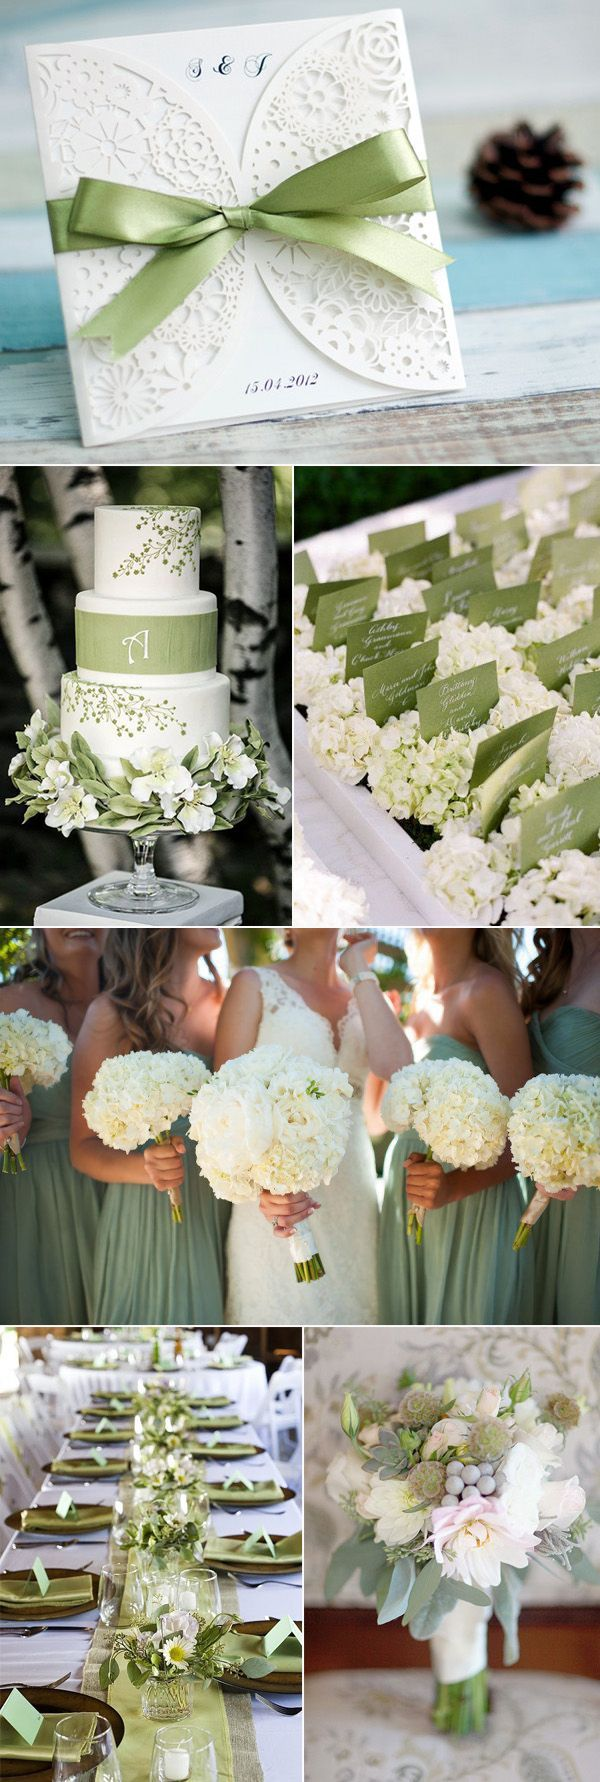 Green and white wedding dress  inexpensive simple white laser cut wedding invitations with sage